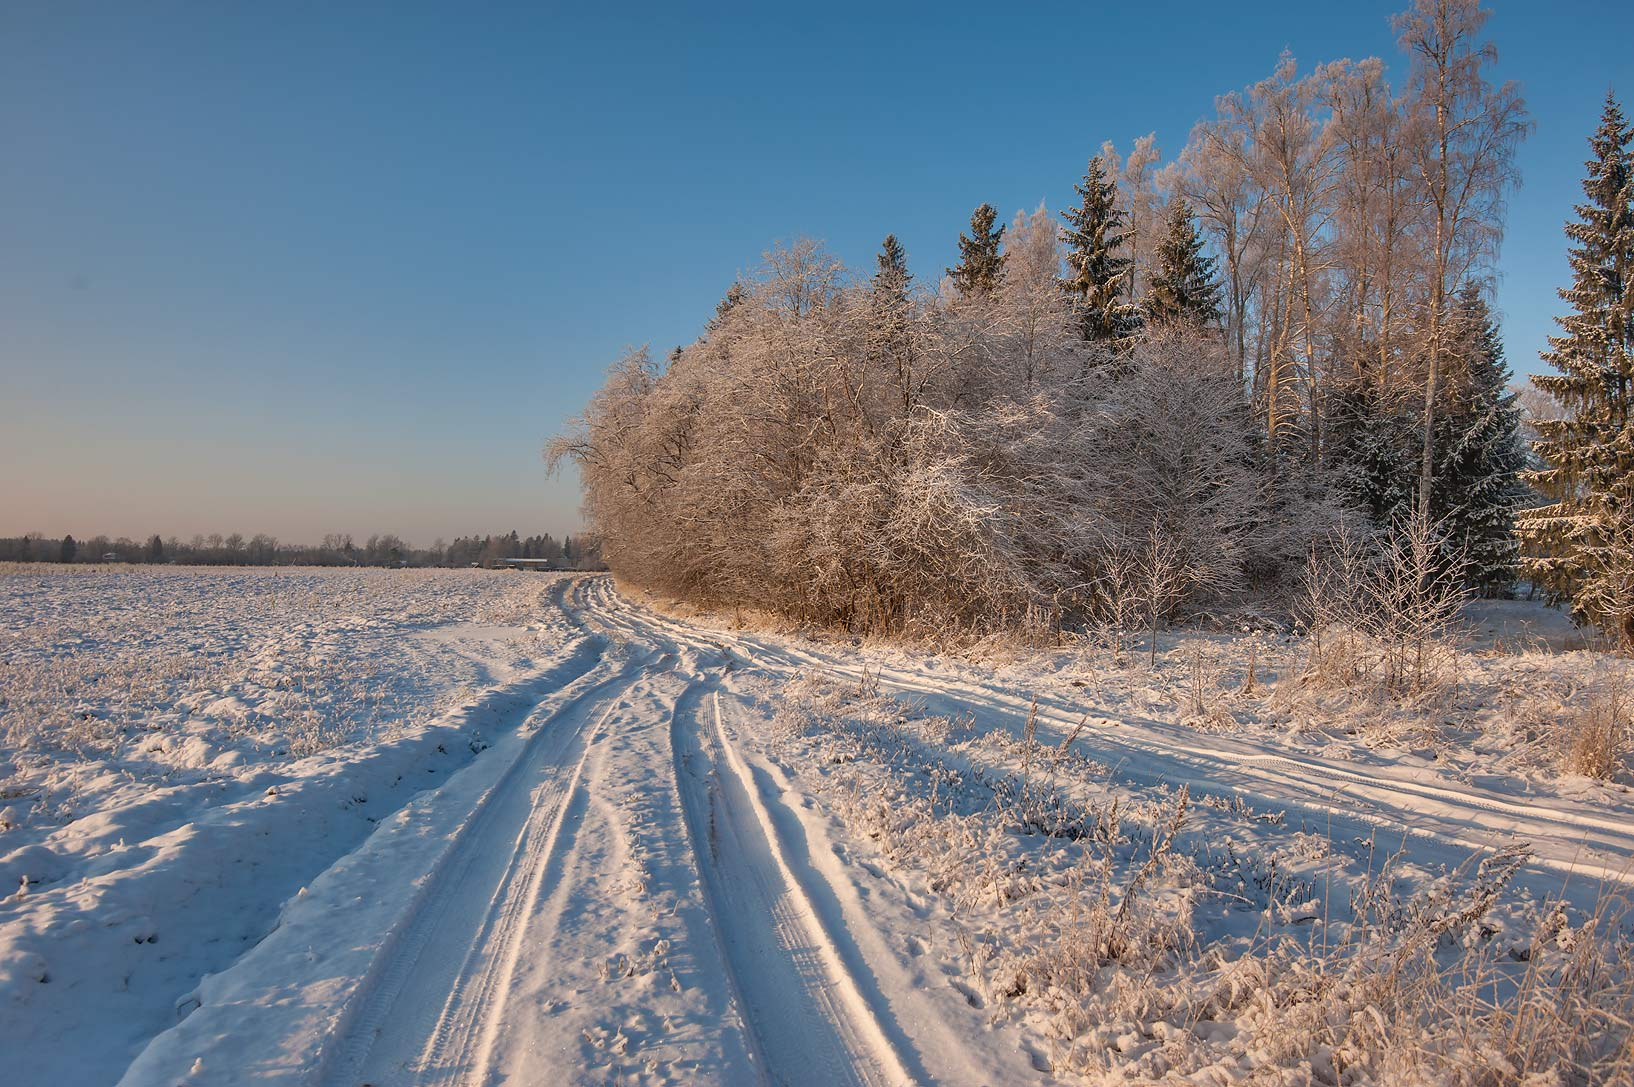 Snowy fields near Griaznovka River springs in...District of Leningrad Region, Russia